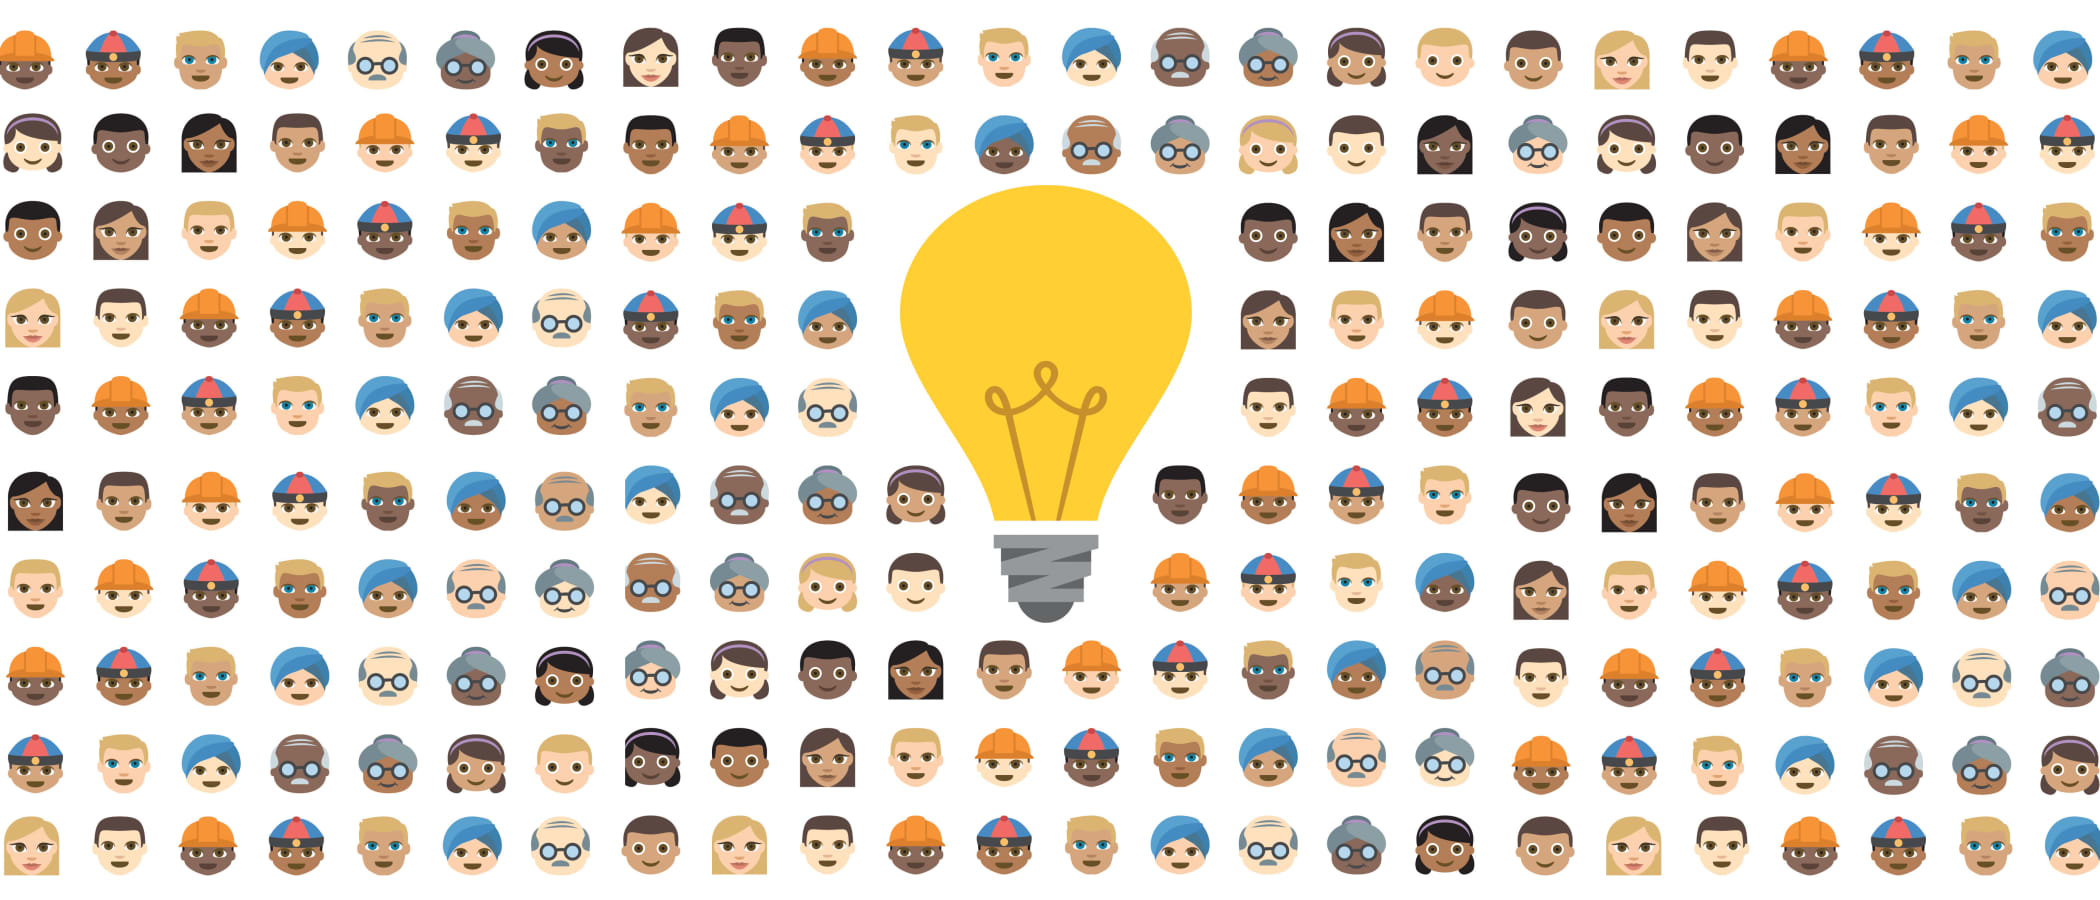 Workplace Diversity and Inclusion Gets Innovative